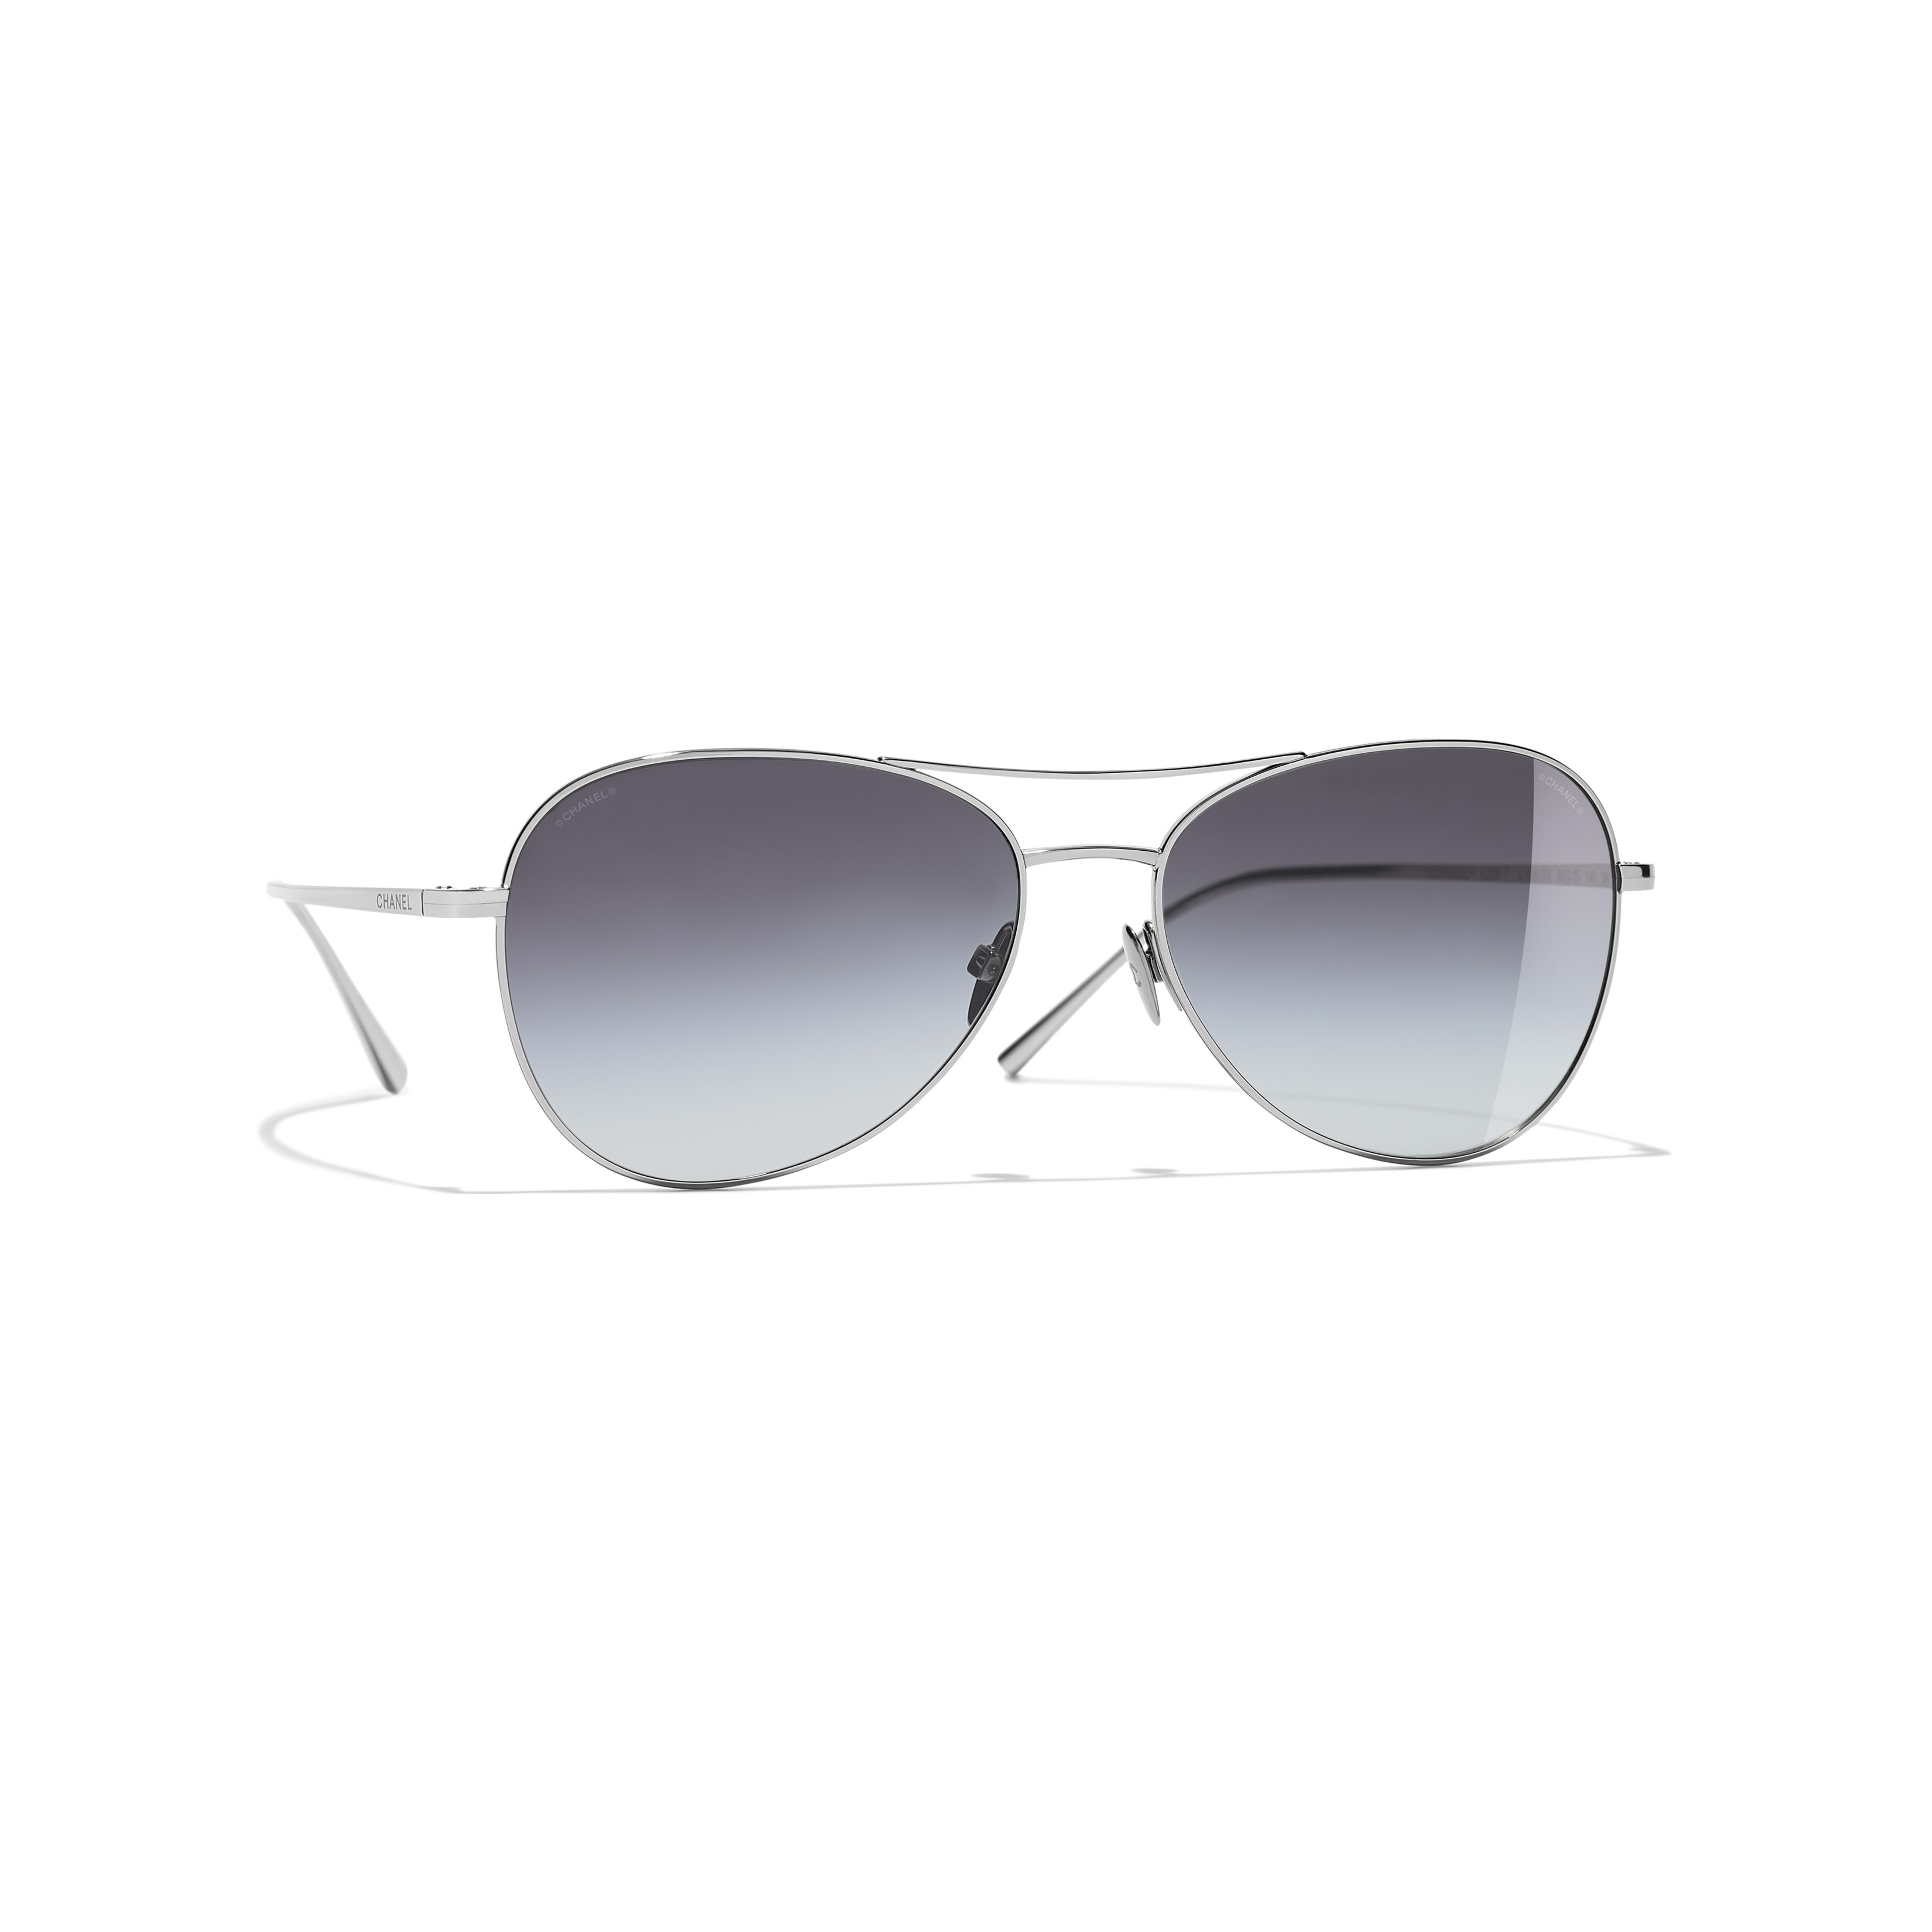 Pilot Sunglasses - Silver - Titanium - Default view - see full sized version